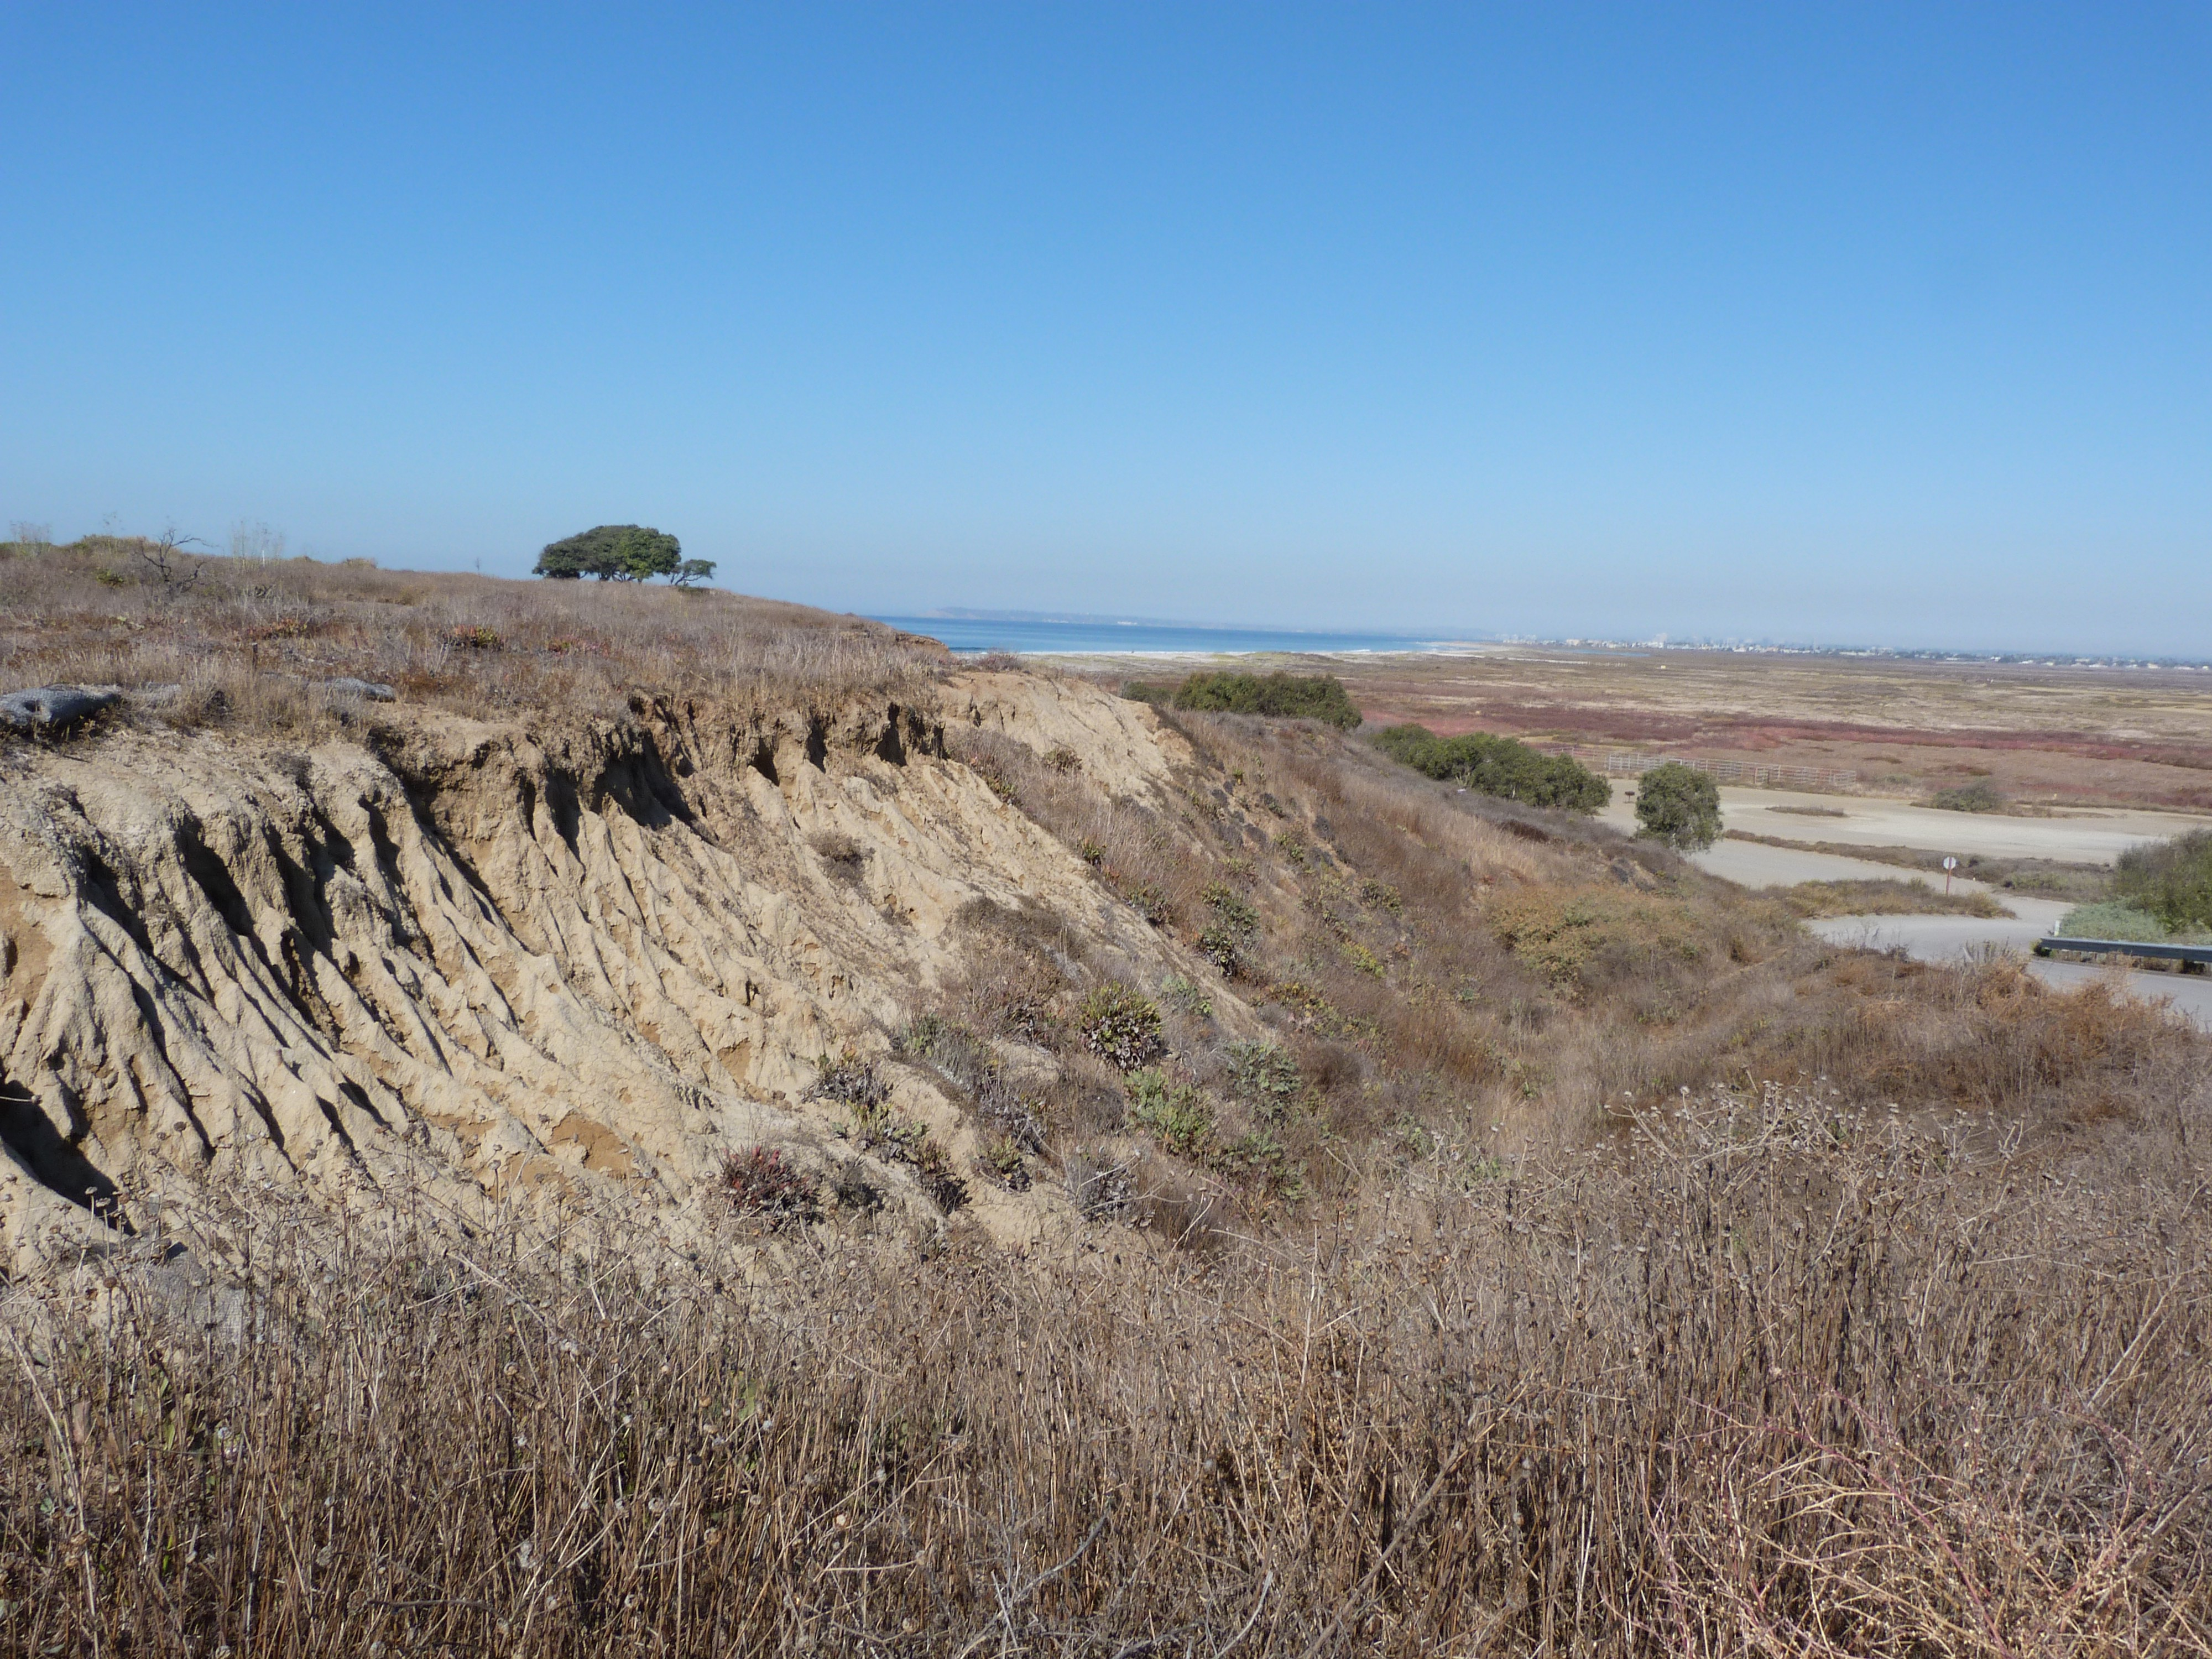 An eroding cliff is covered, above and below, with dry  gray and brown vegetation. In the distance is the Pacific Ocean.